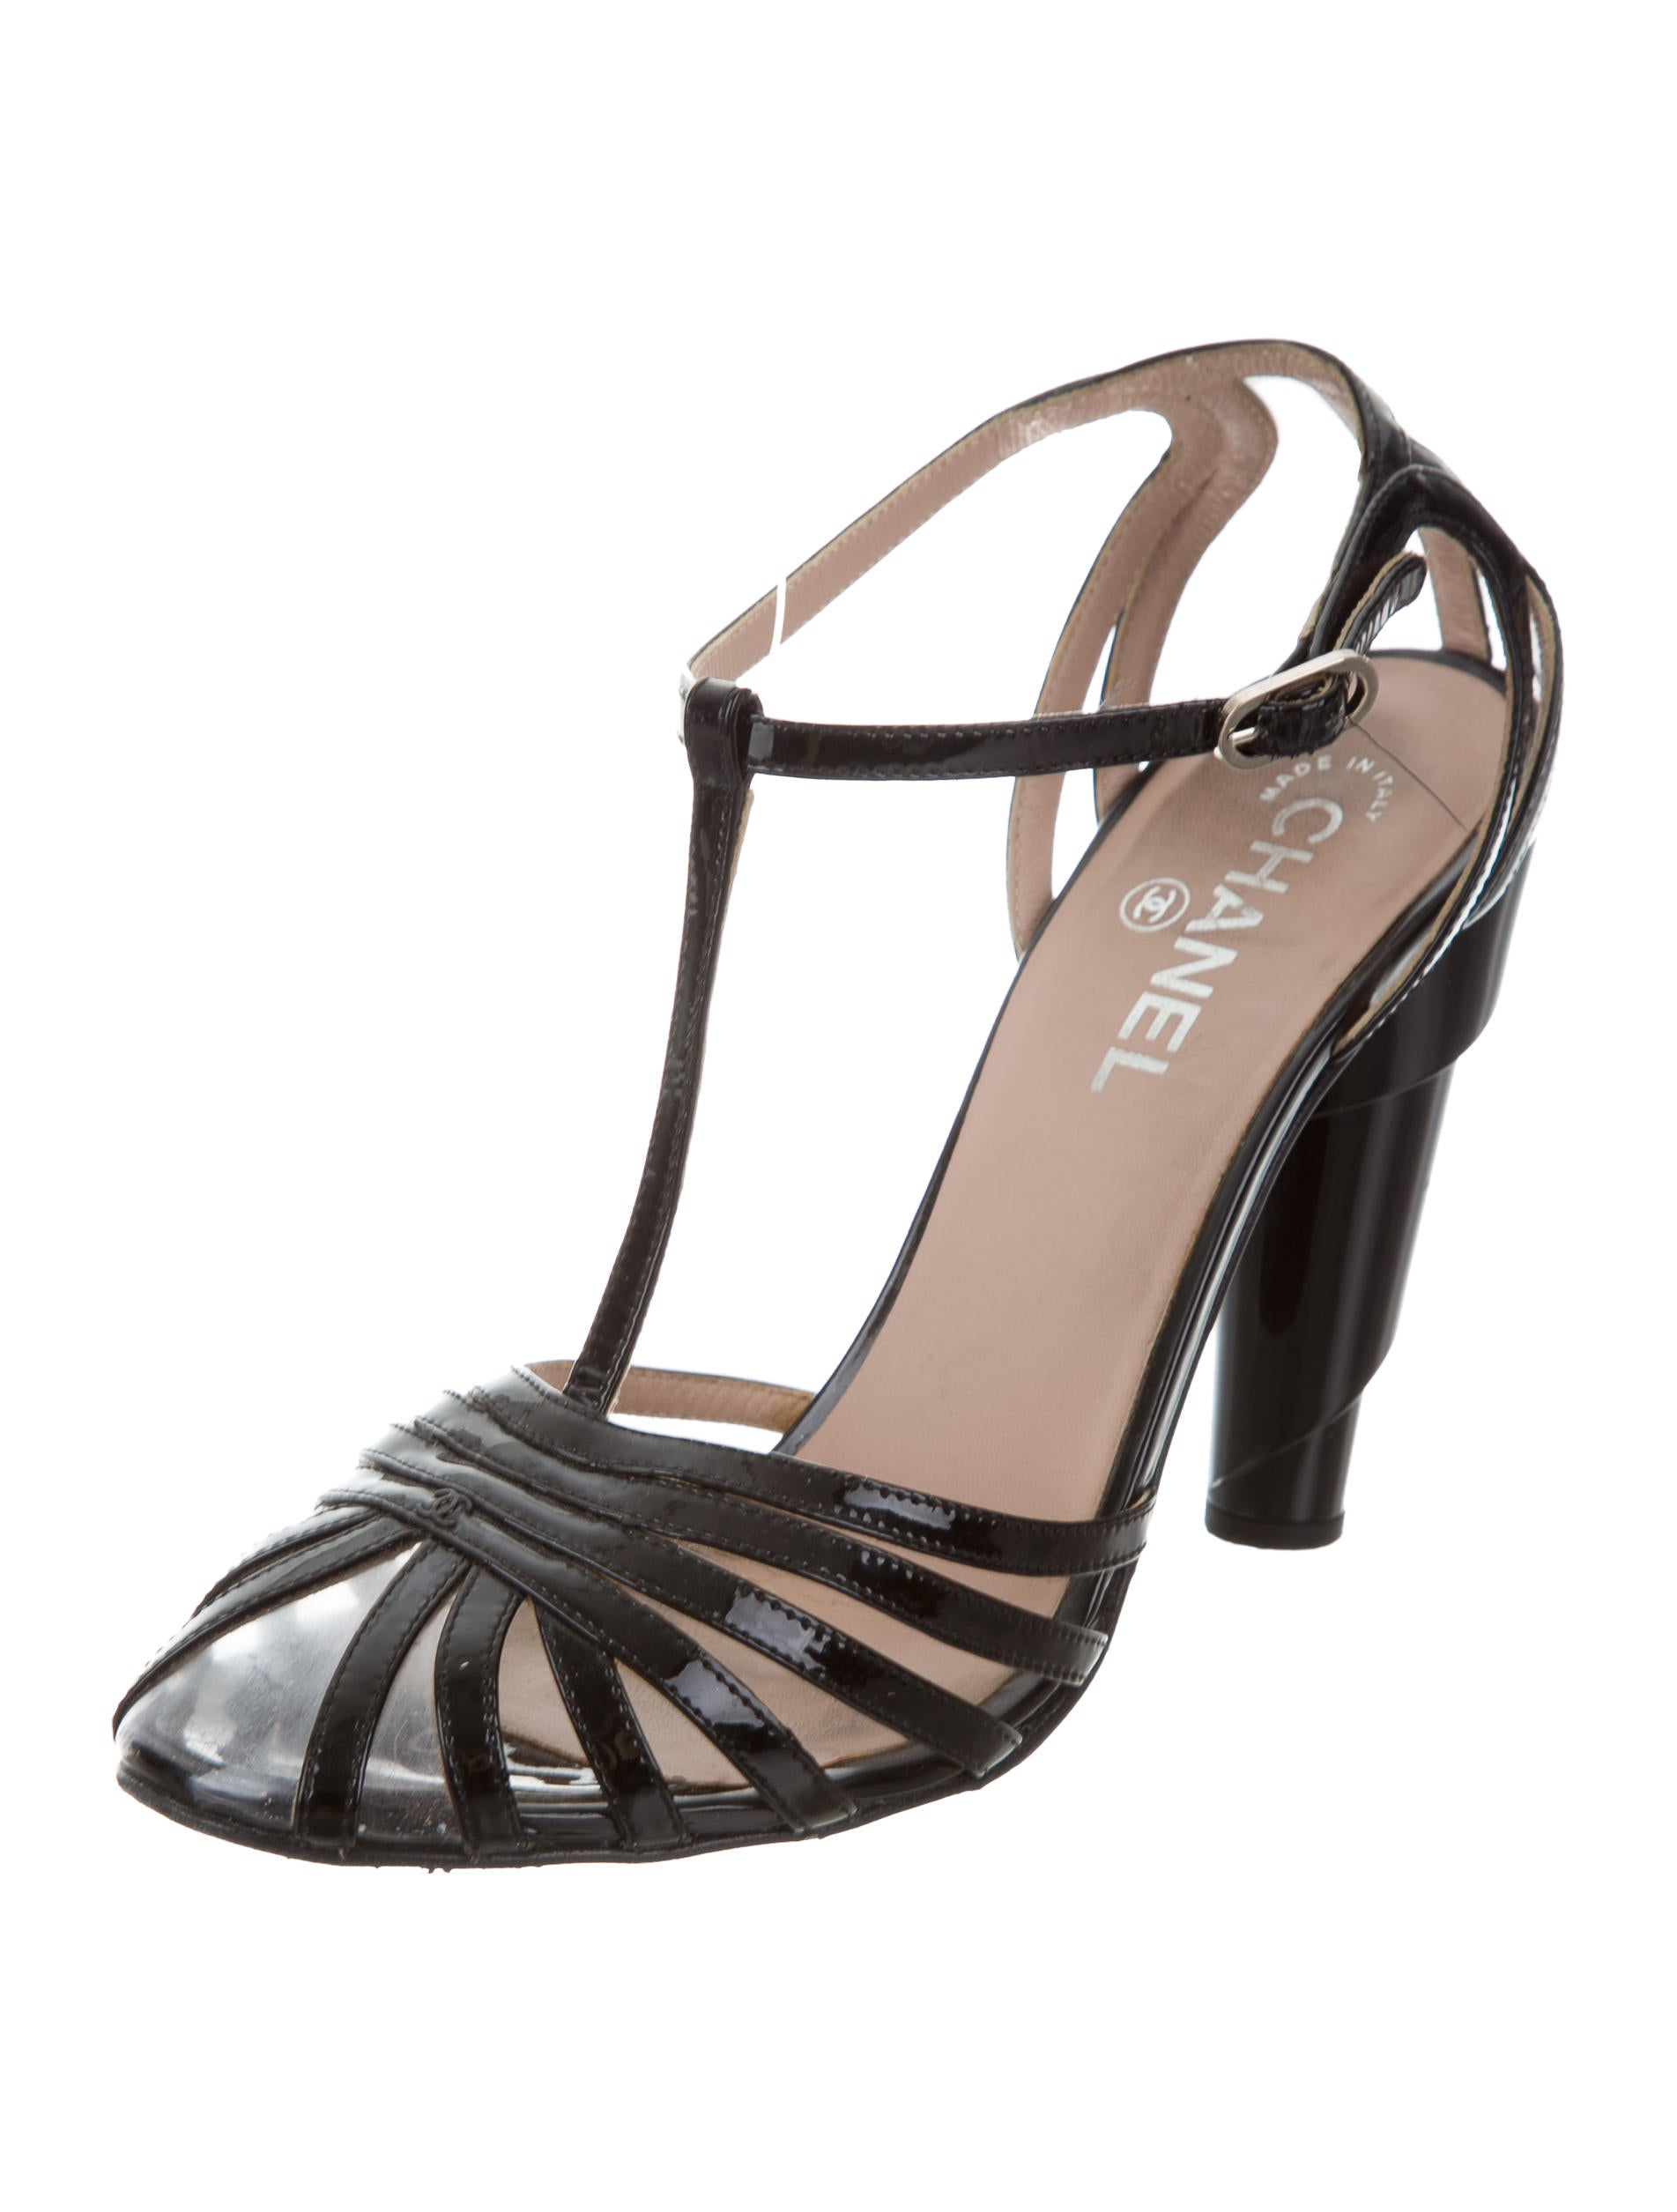 chanel patent leather t strap pumps shoes cha205184 the realreal. Black Bedroom Furniture Sets. Home Design Ideas